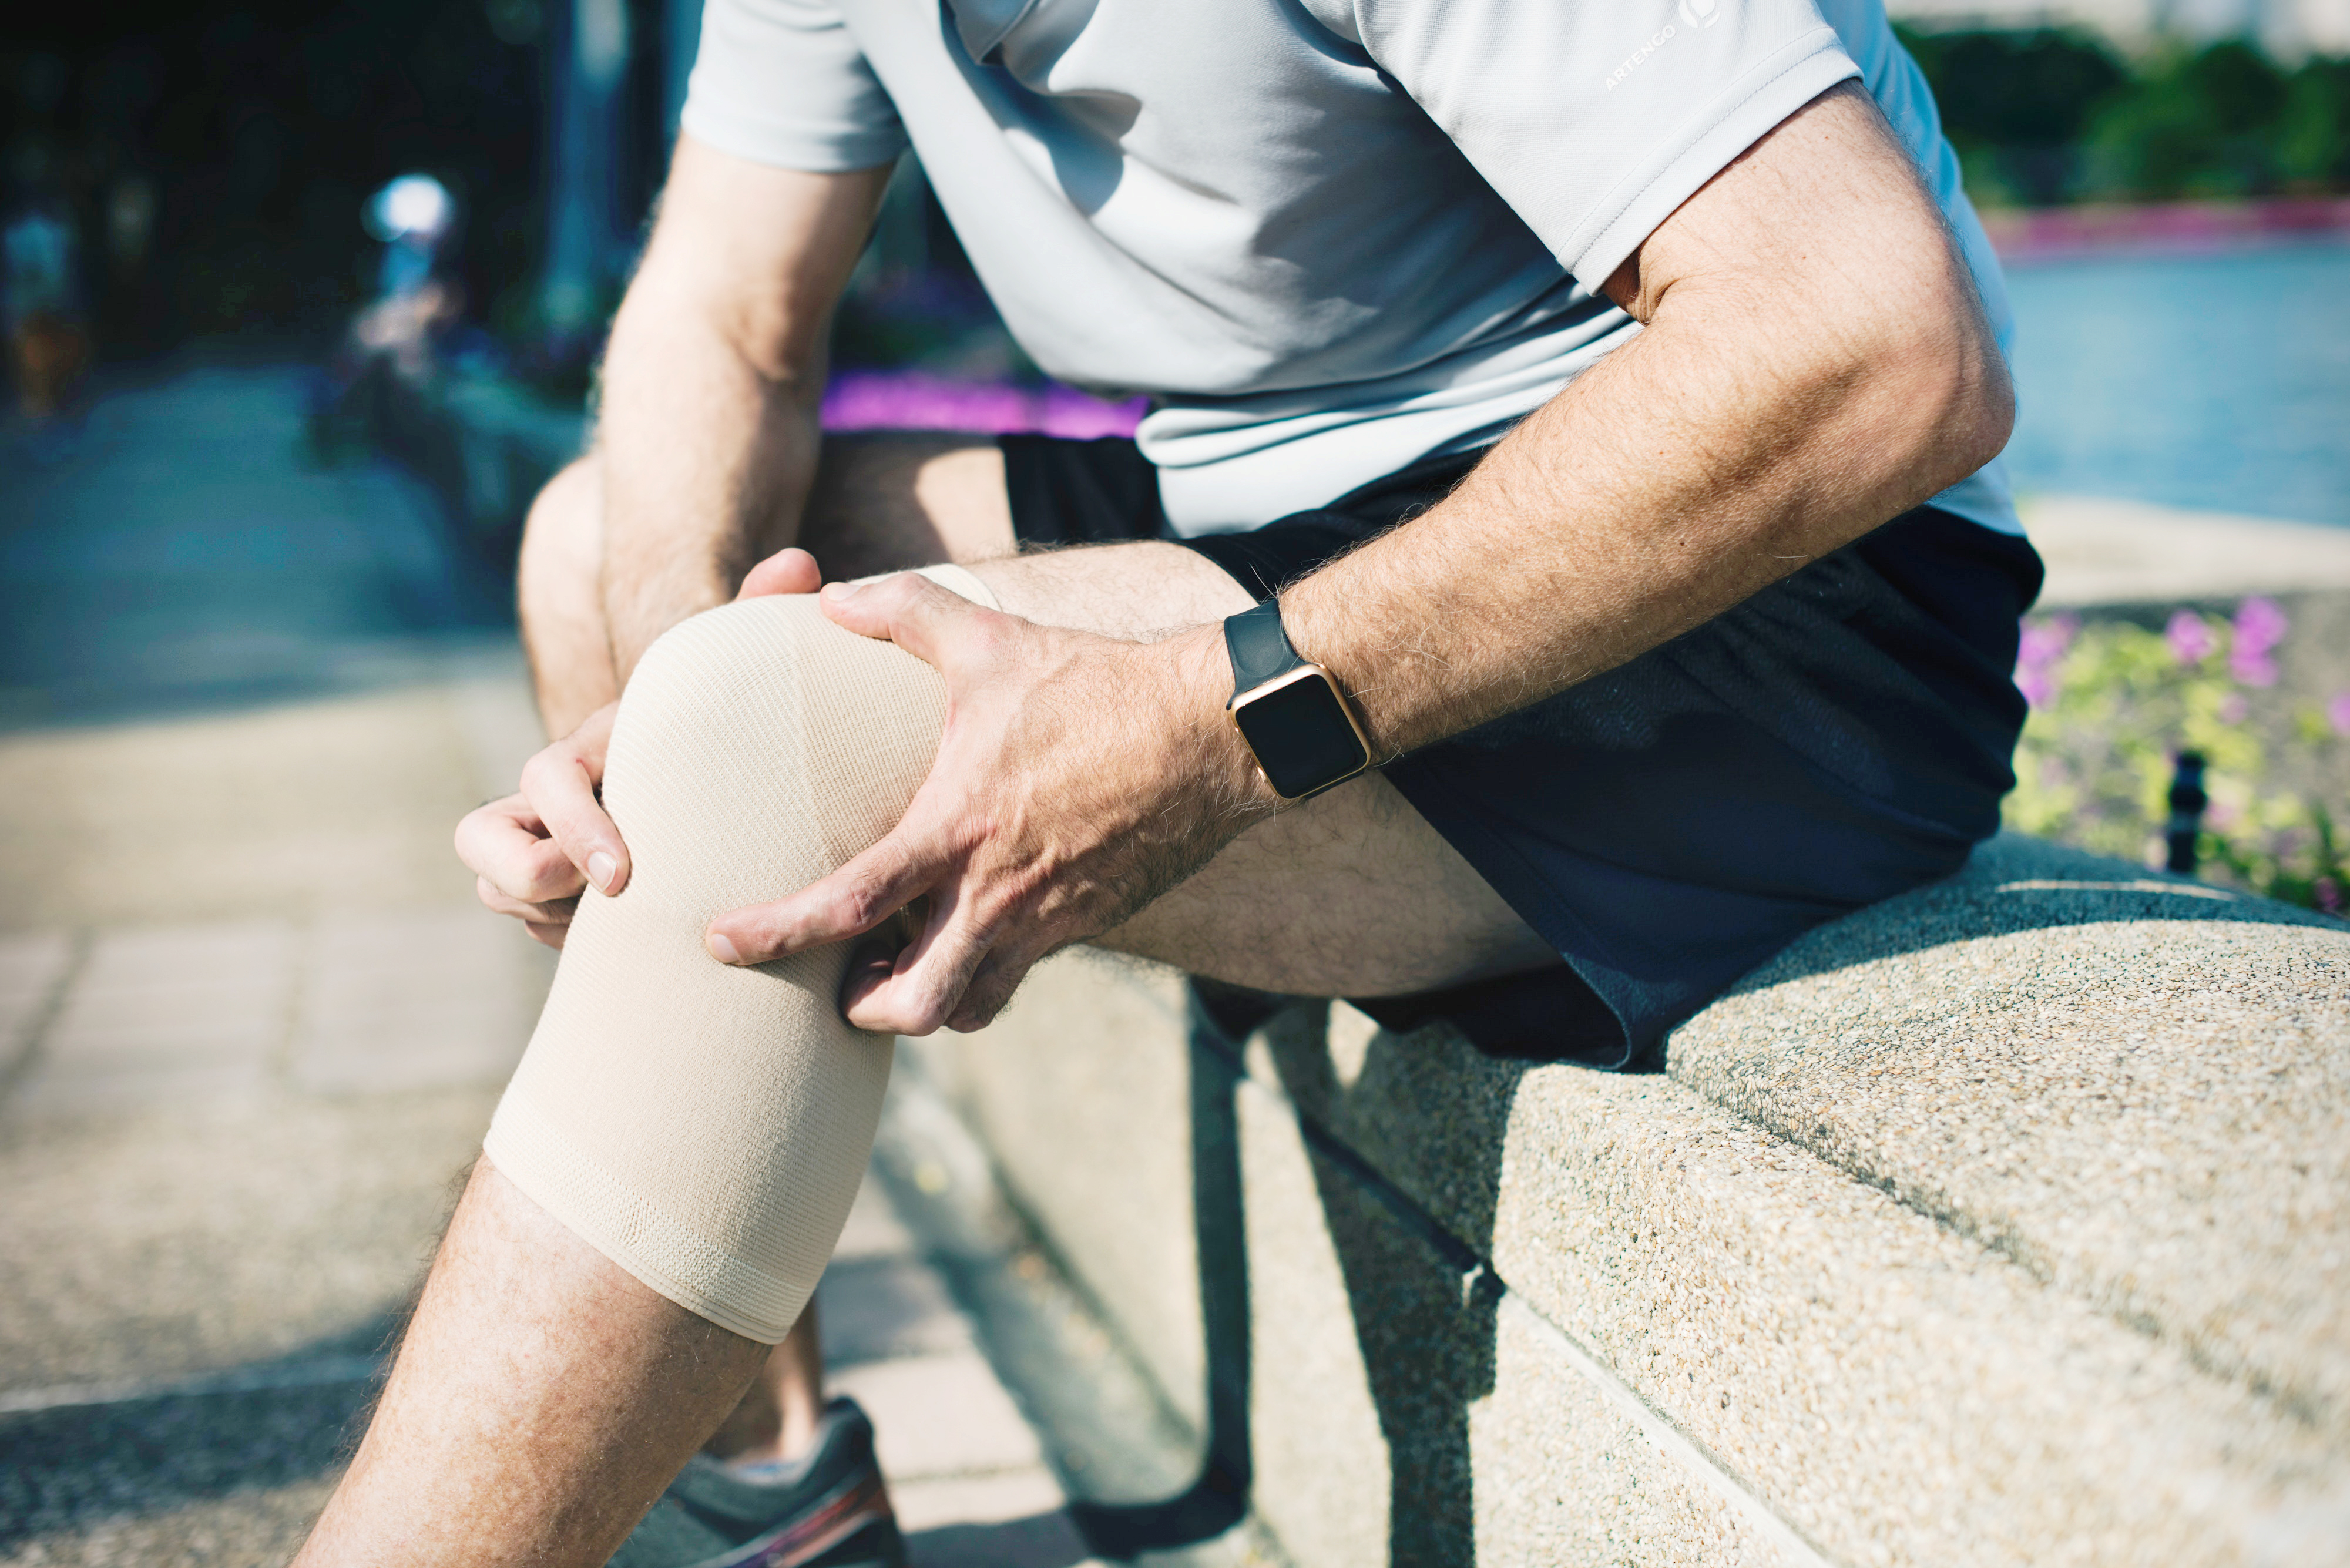 Staying Fit with Chronic Pain